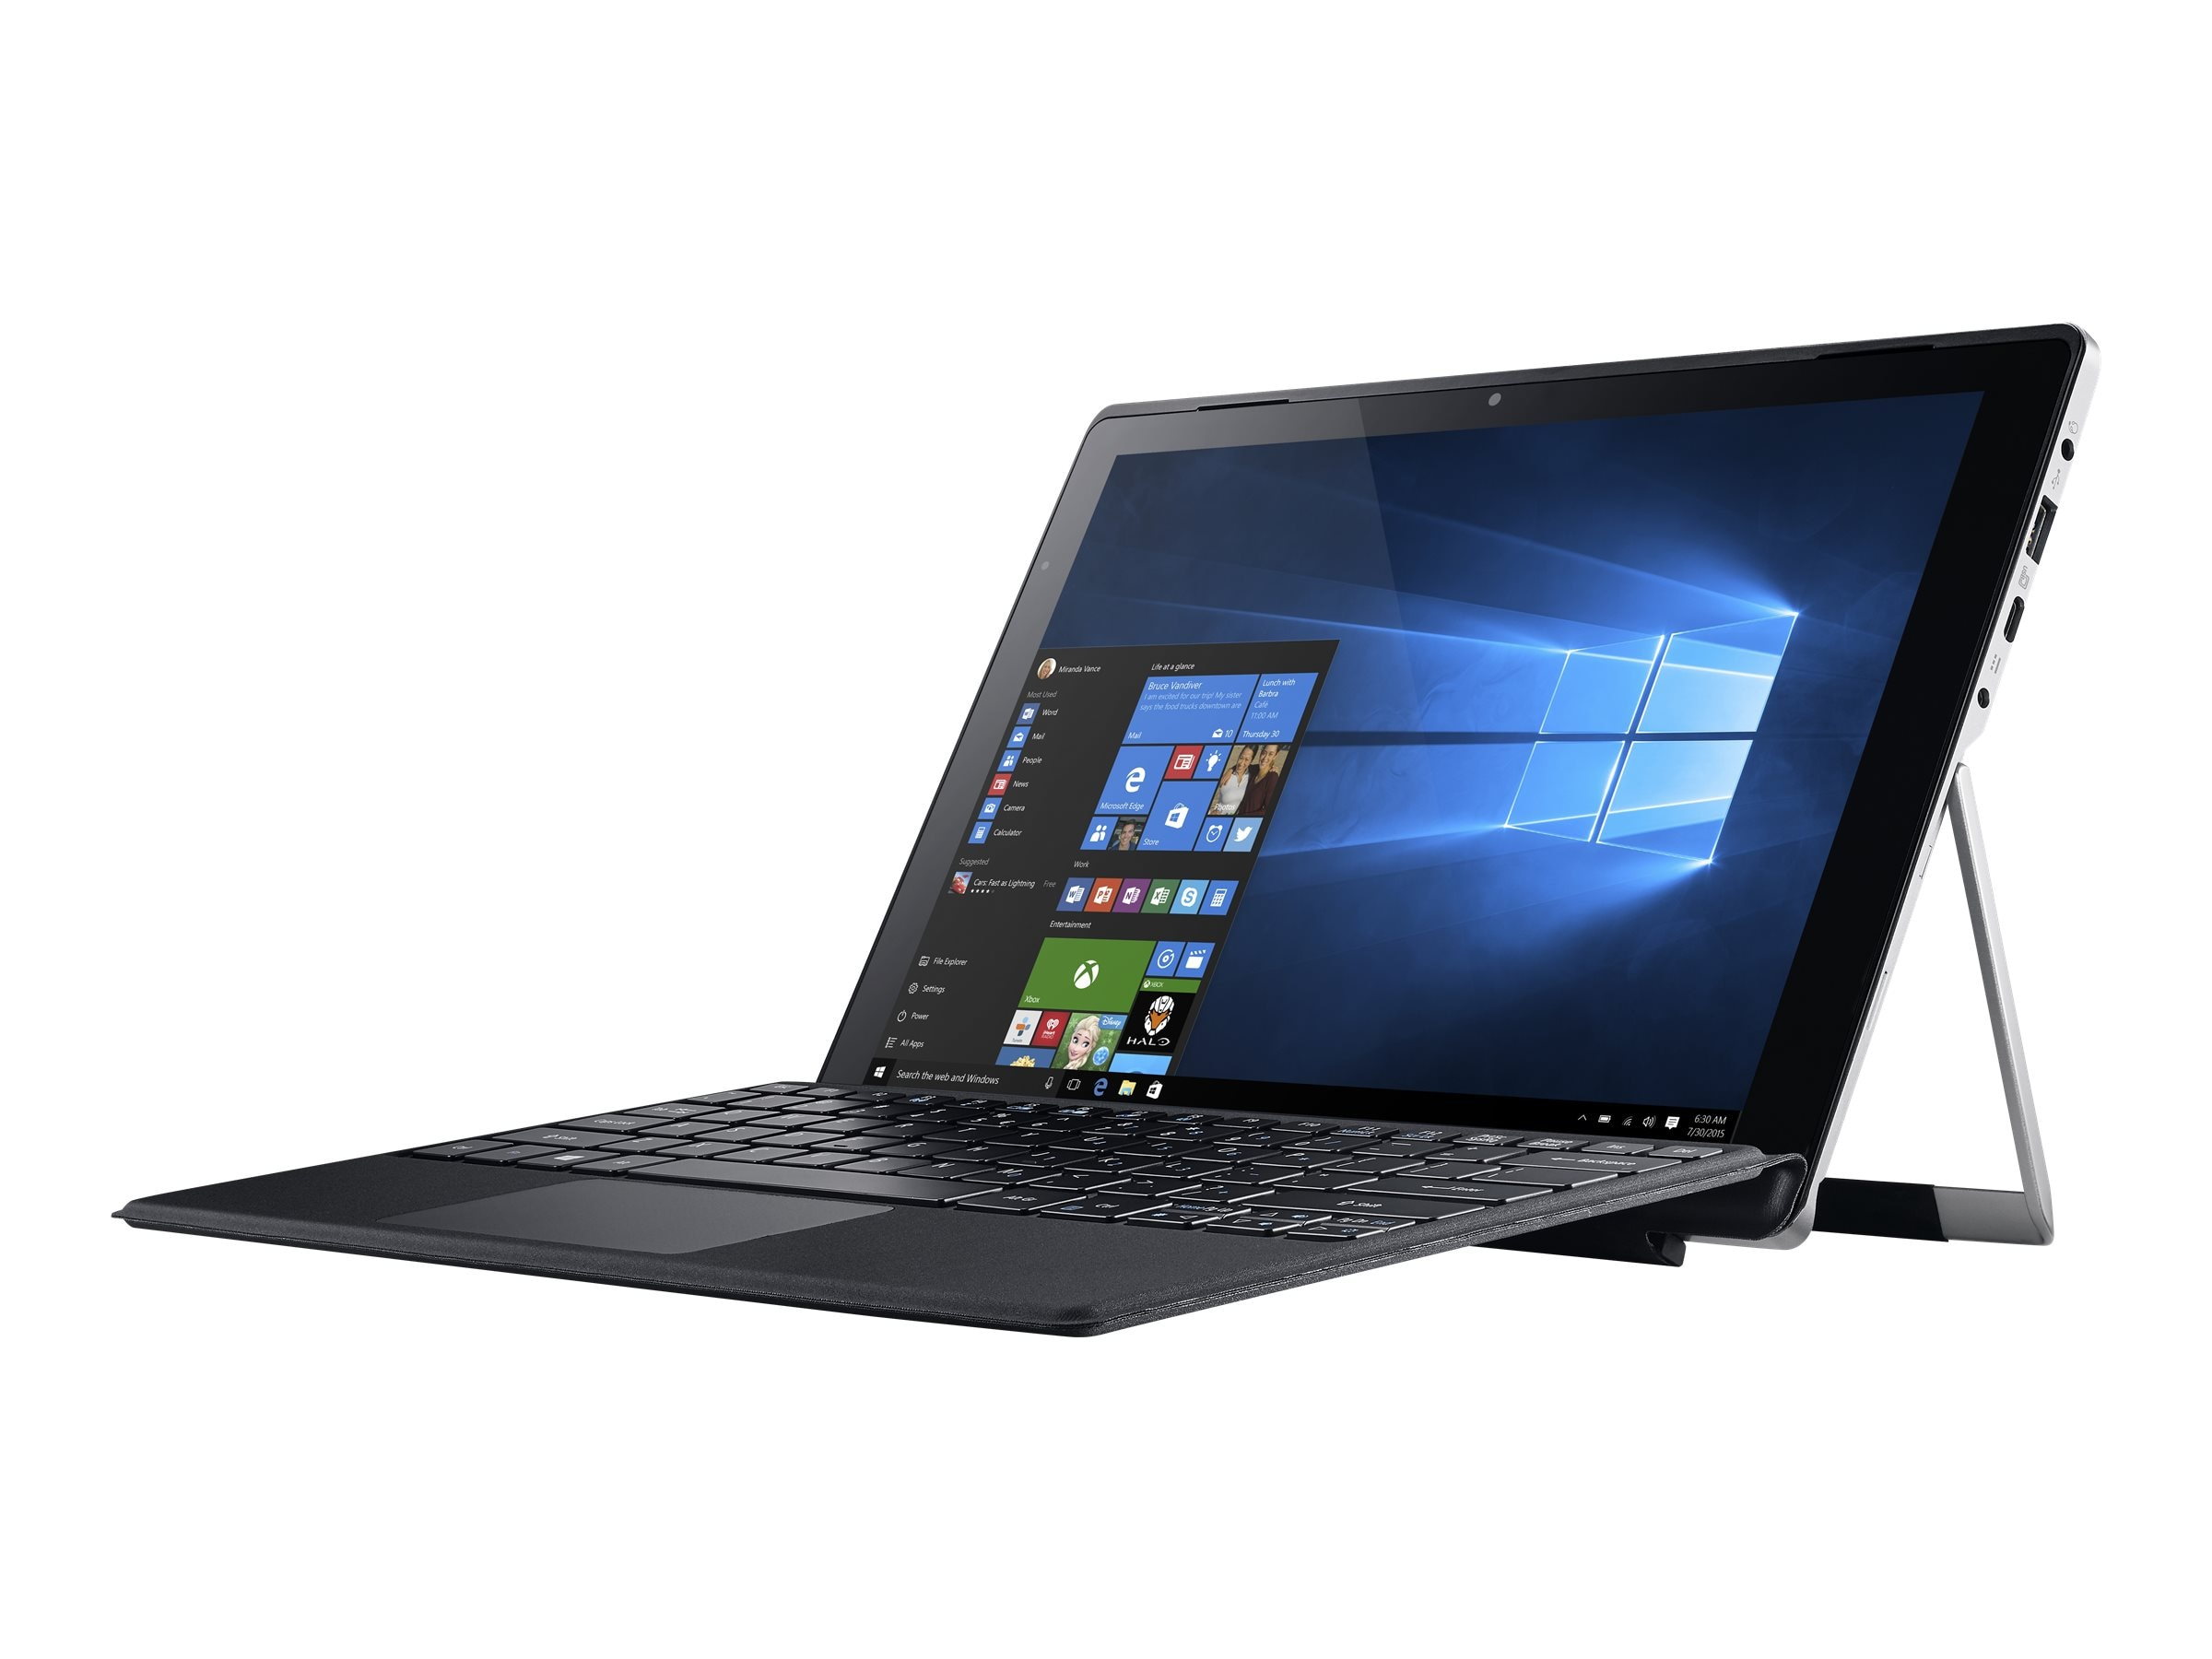 Acer Aspire Switch Alpha 12 SA5-271-78M8 2.5GHz processor Windows 10 Home Edition 64-bit, NT.LCDAA.014, 32327091, Tablets